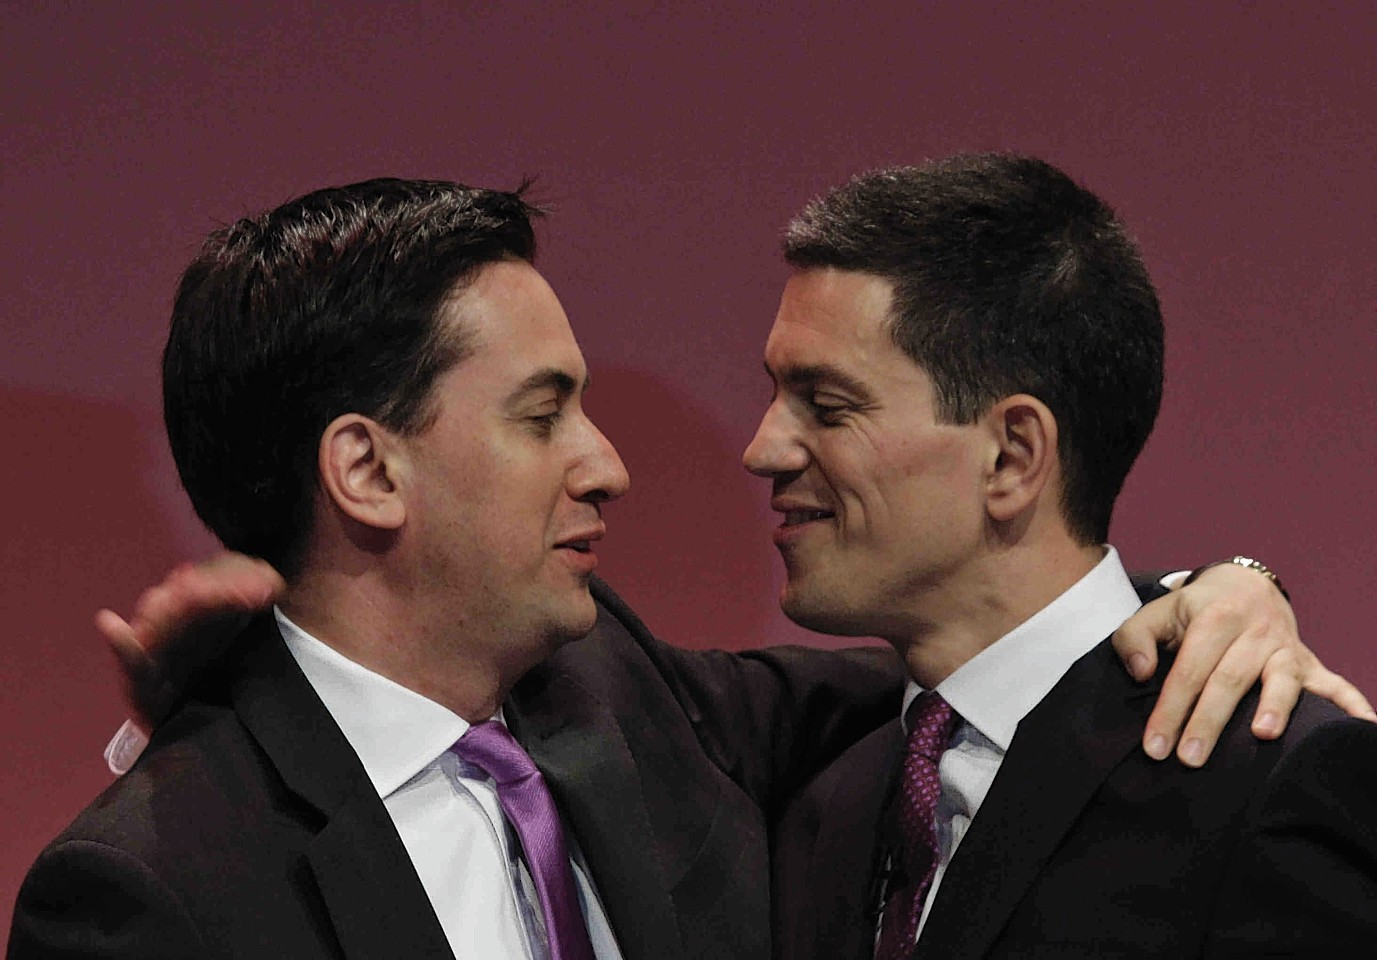 David Miliband, right, embraces his brother, Ed, at a Labour Party conference